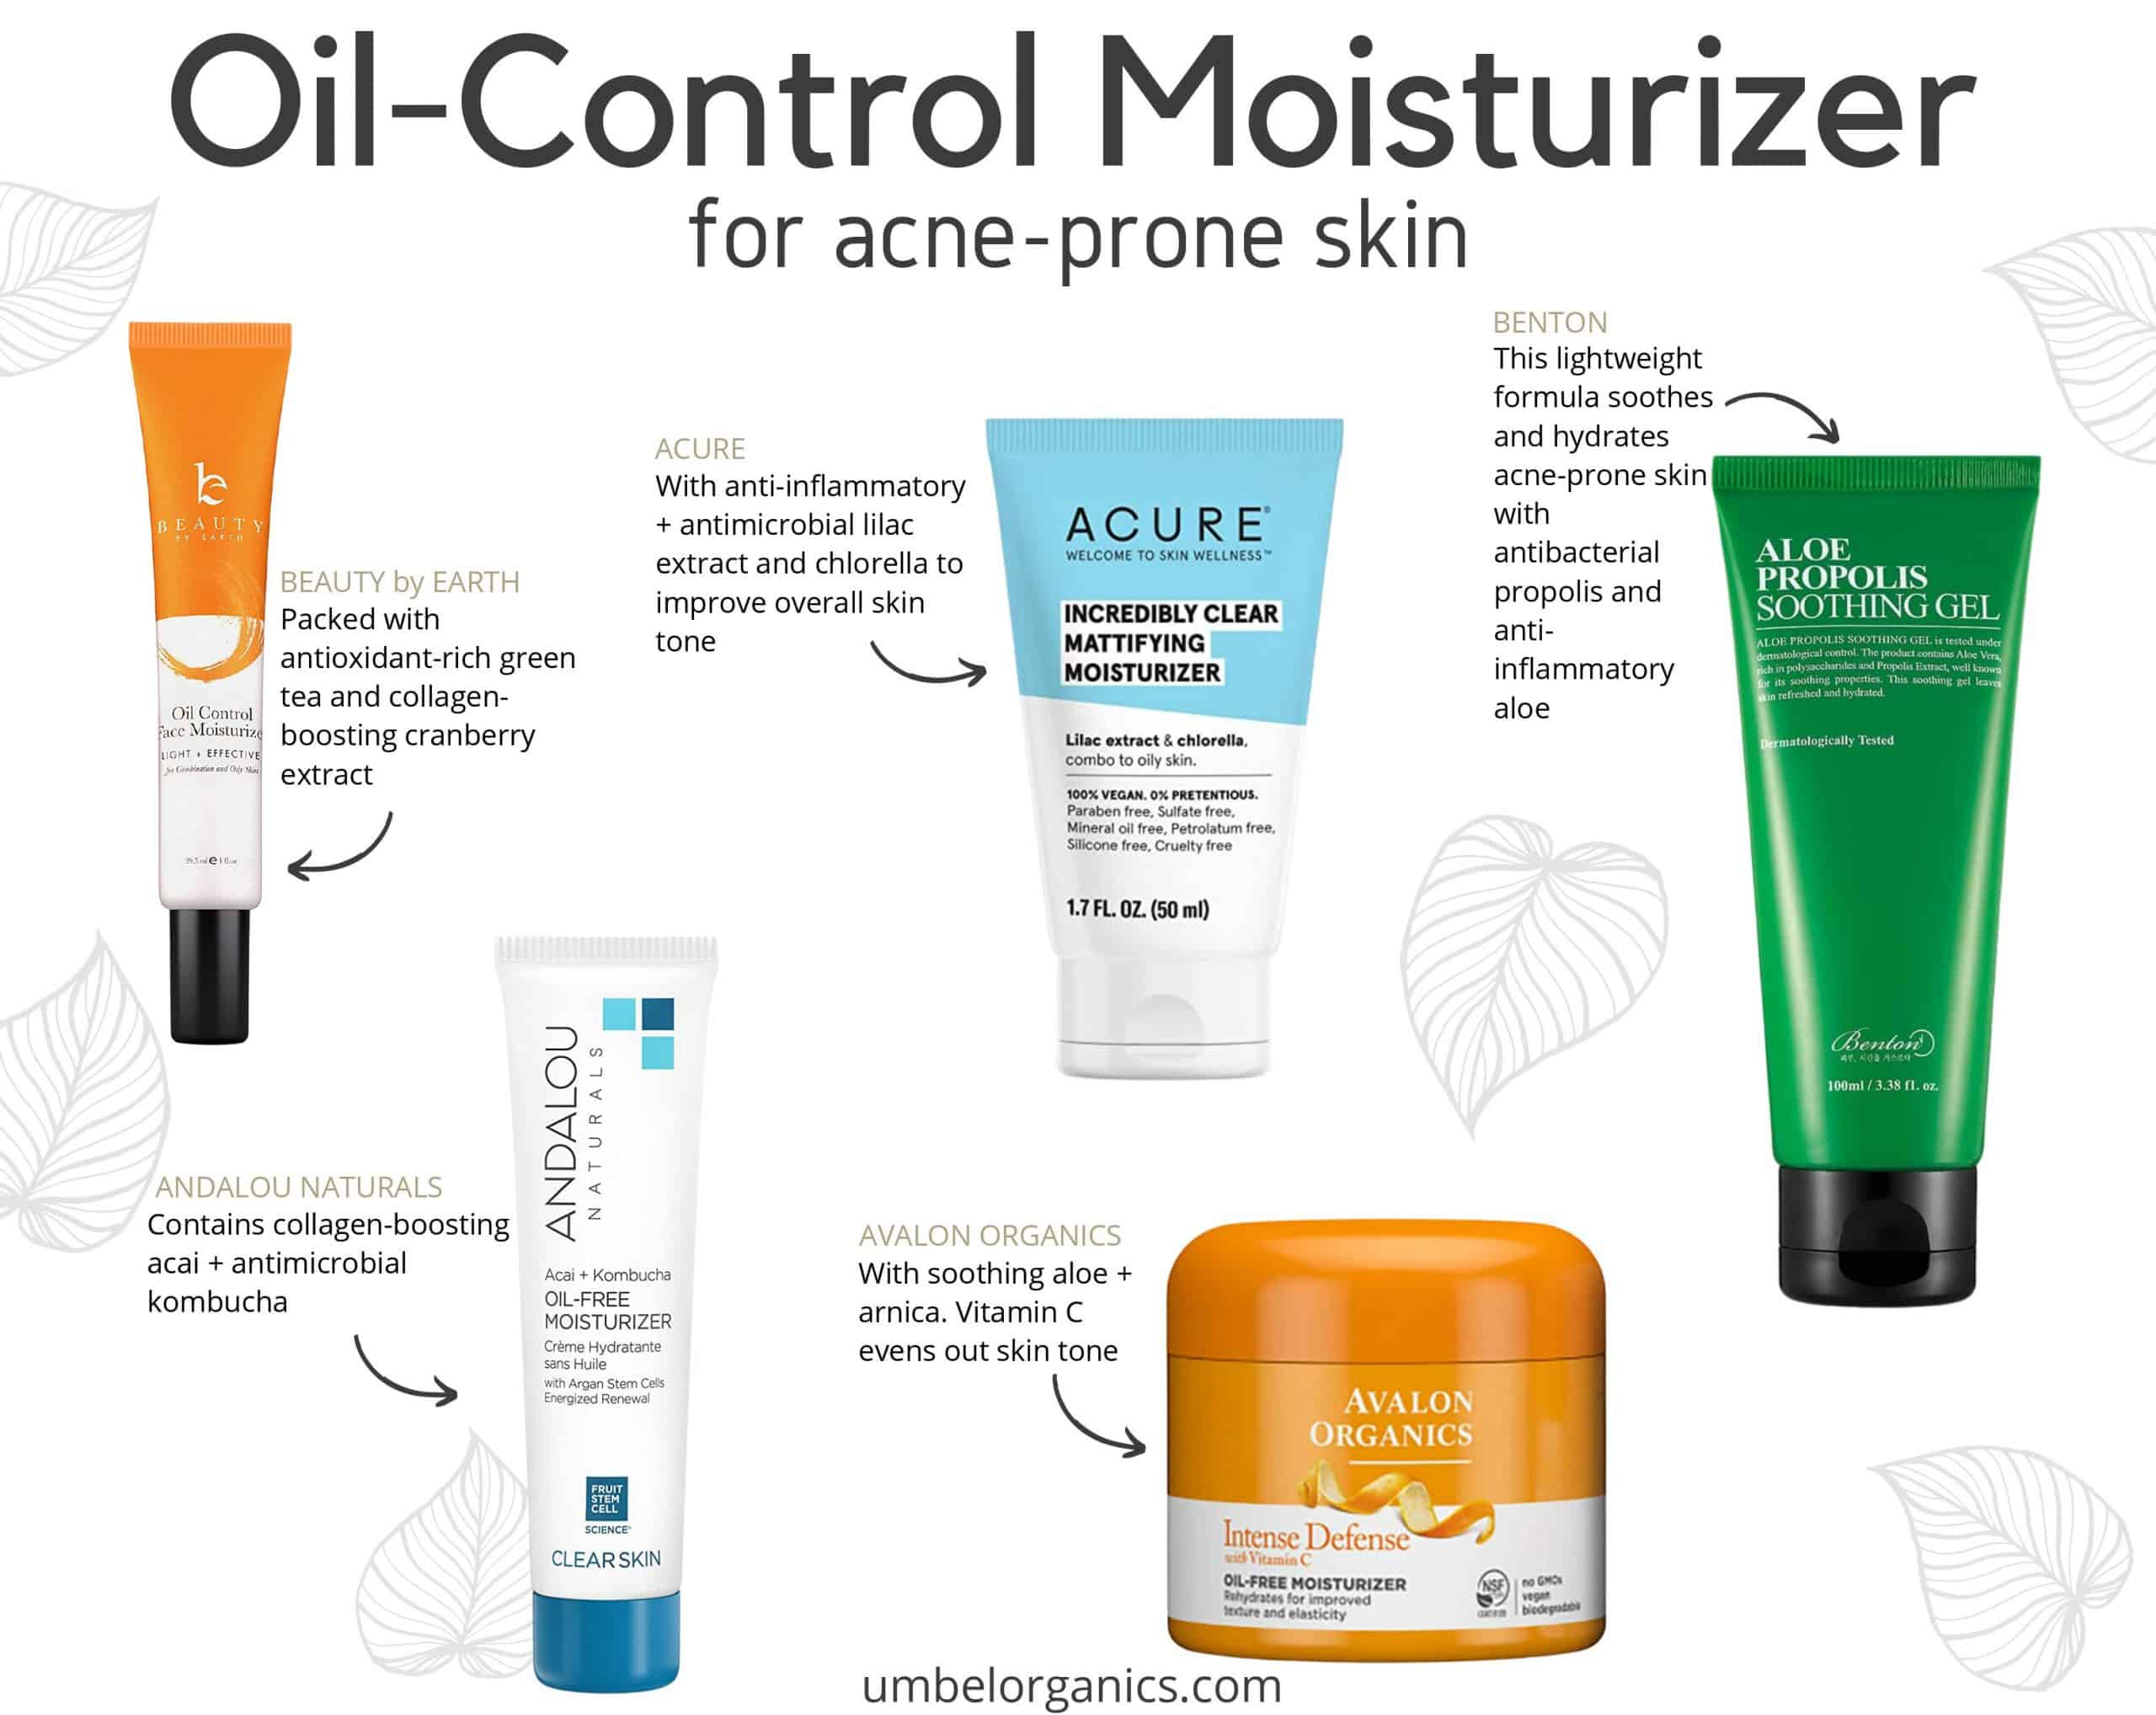 5 brands of clean, affordable oil-control face moisturizer